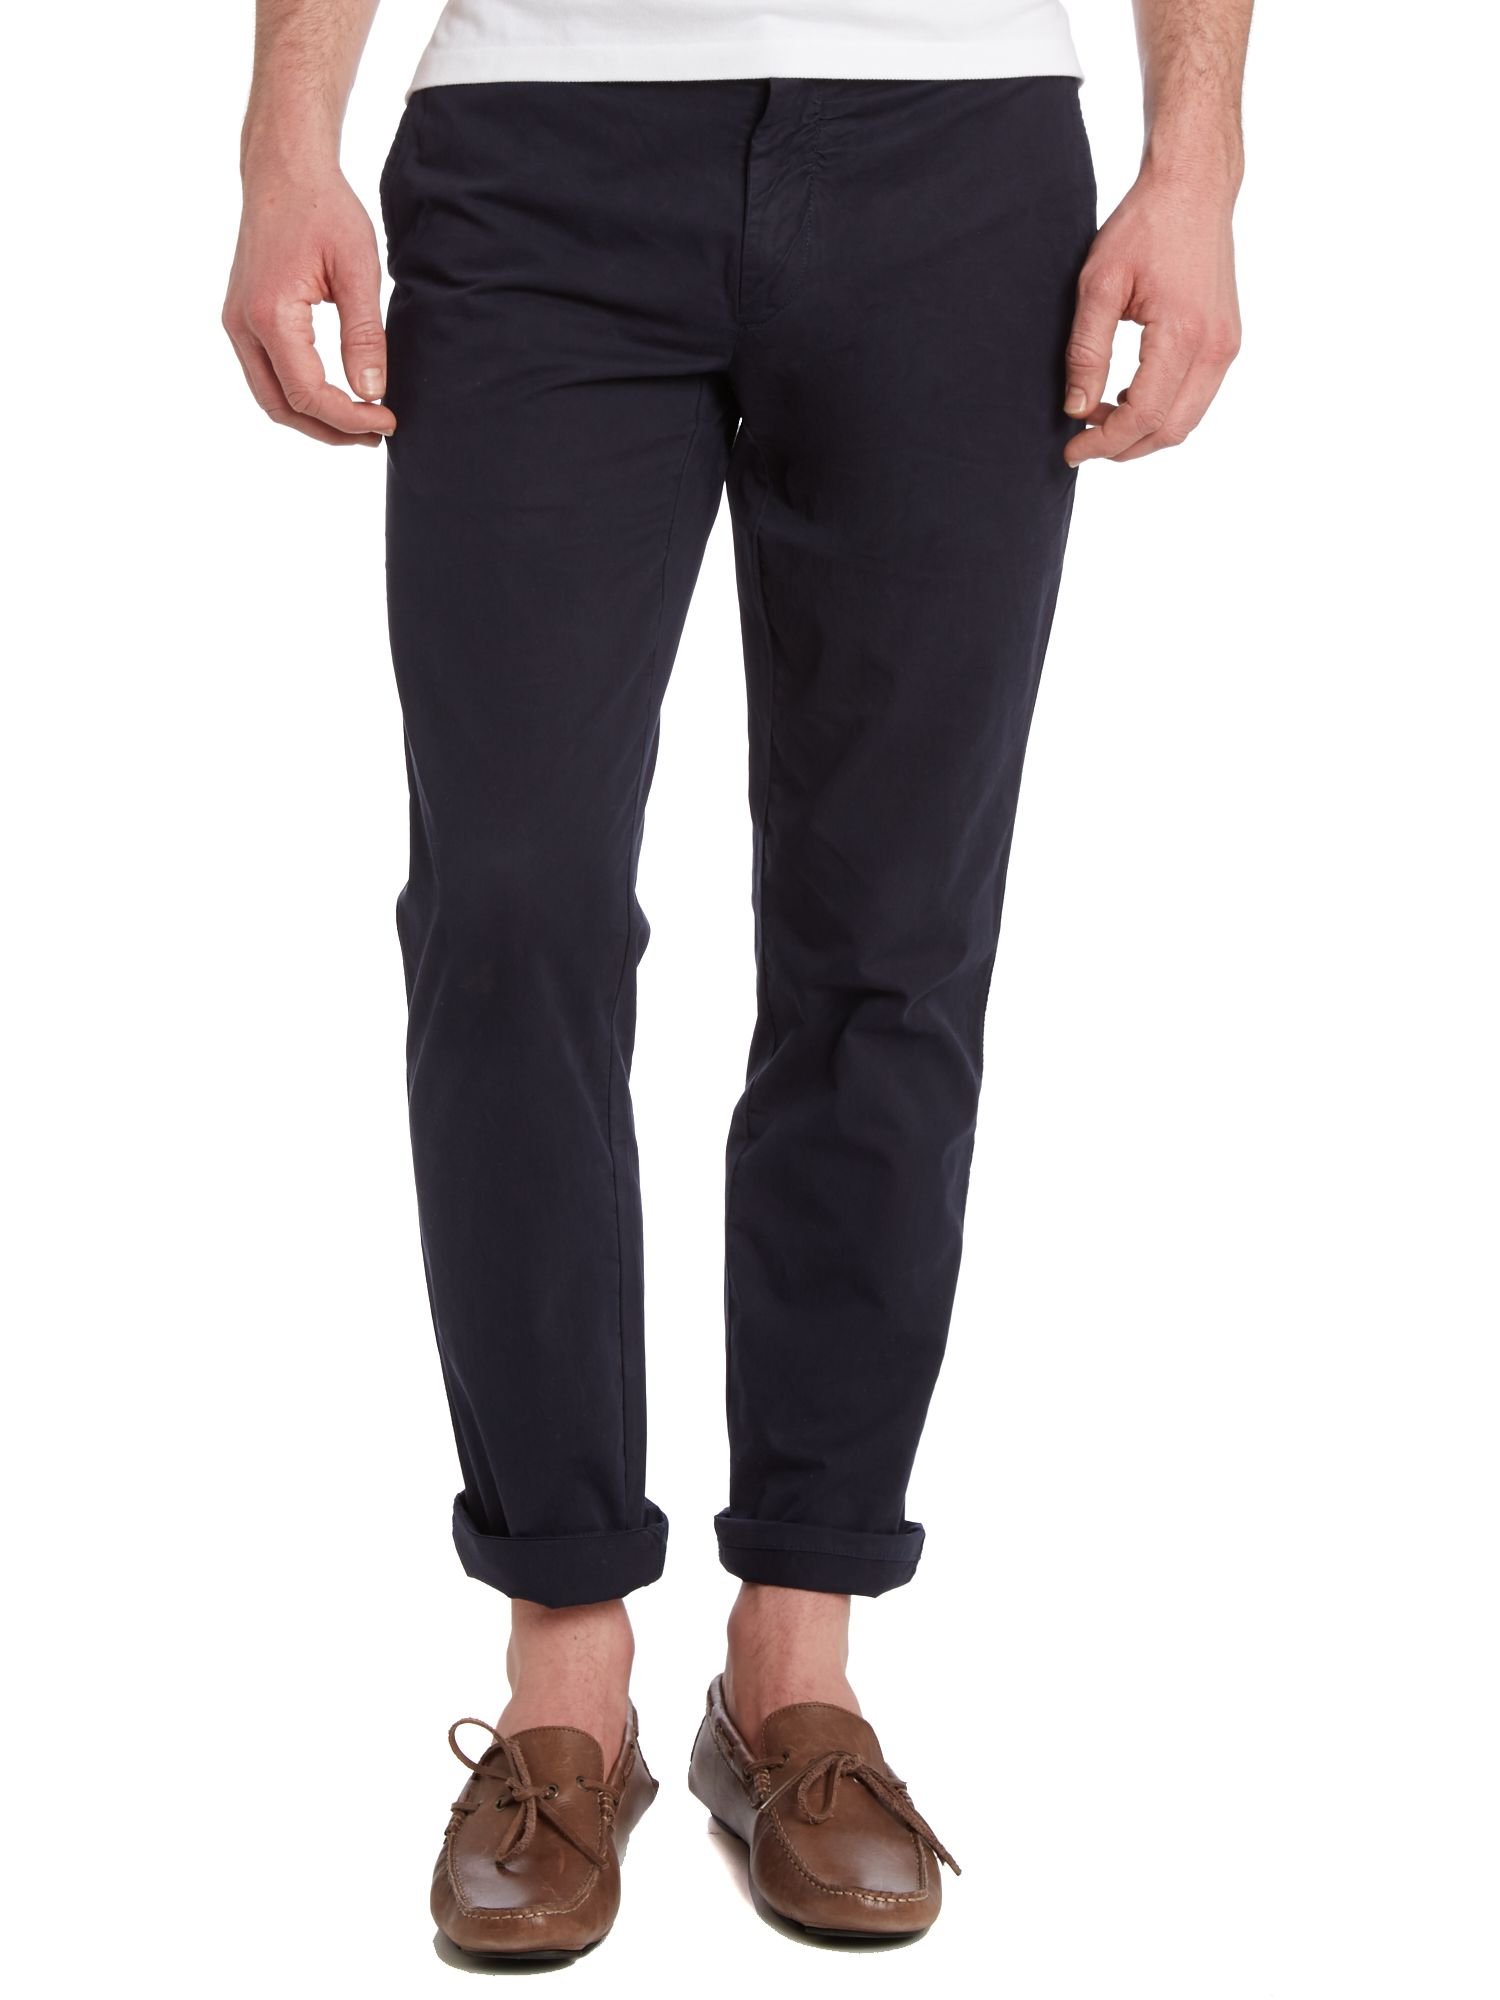 Newport striaght fit chino